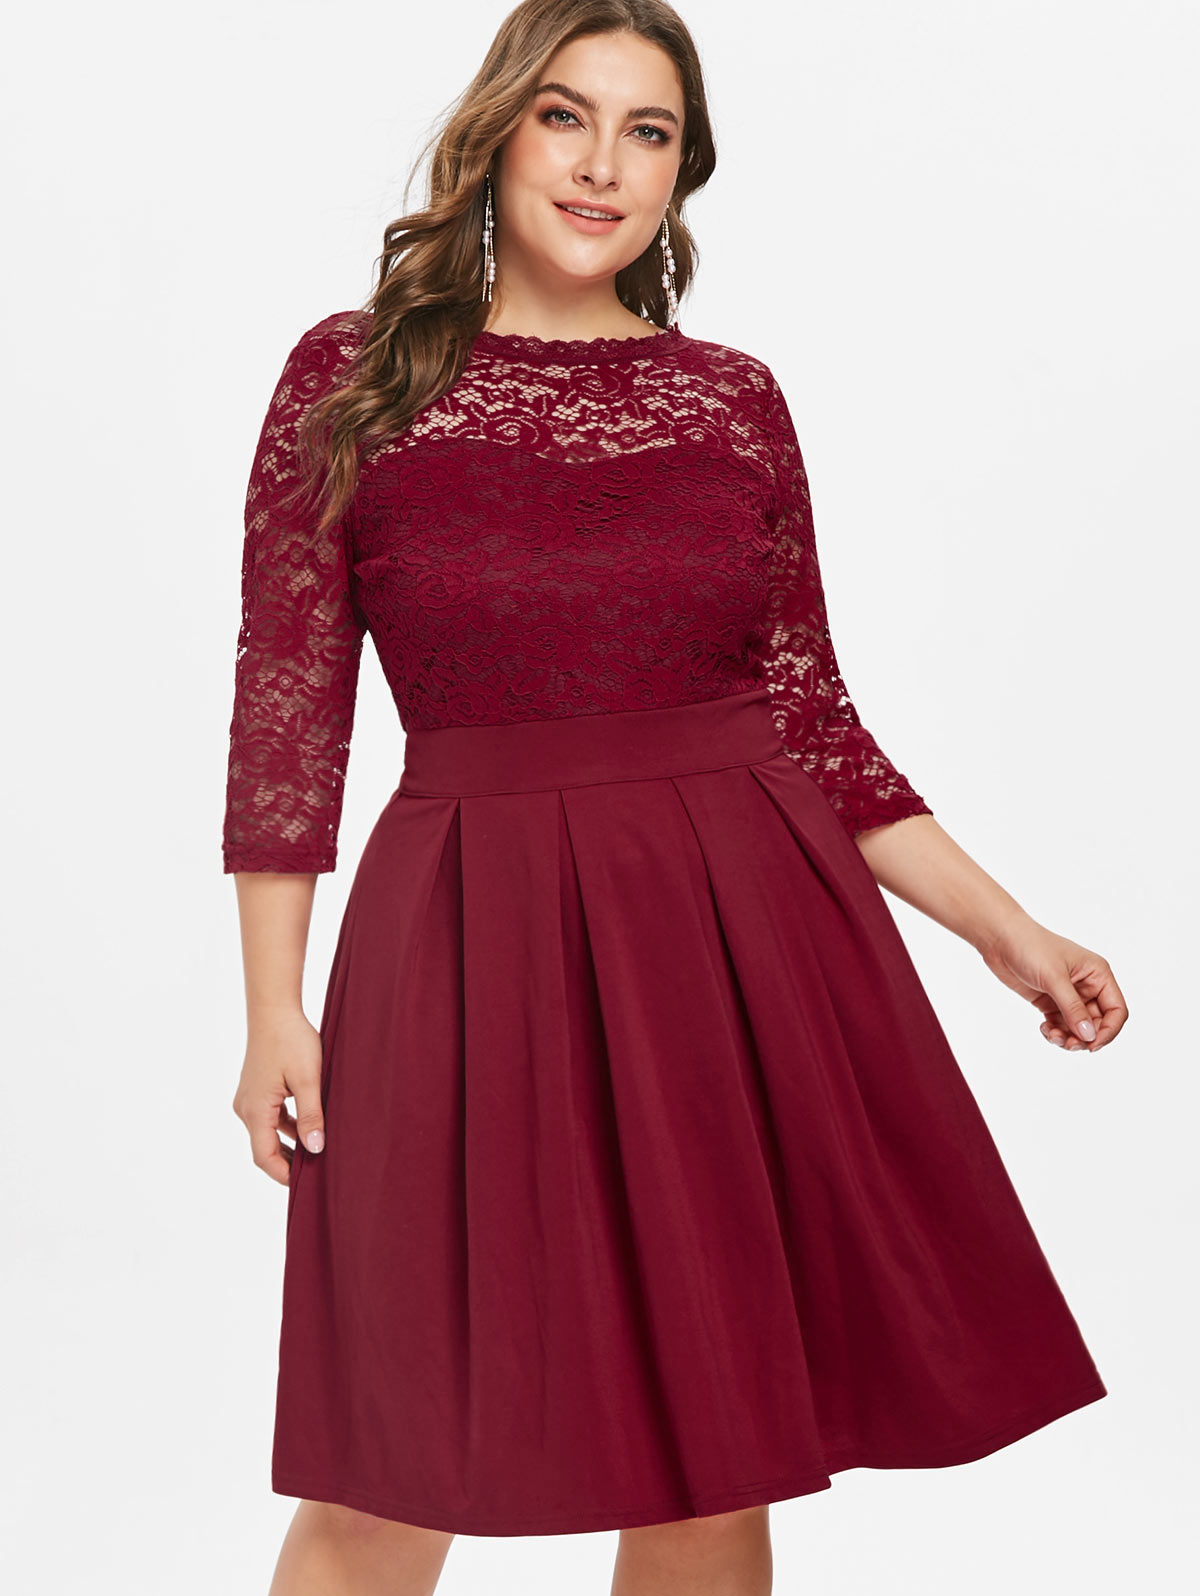 US $18.51 48% OFF|Wipalo Round Neck Plus Size Lace Panel A Line Dress Women  Dresses Solid Color 3/4 Sleeves Midi Dress Female Clothing Vestidos-in ...